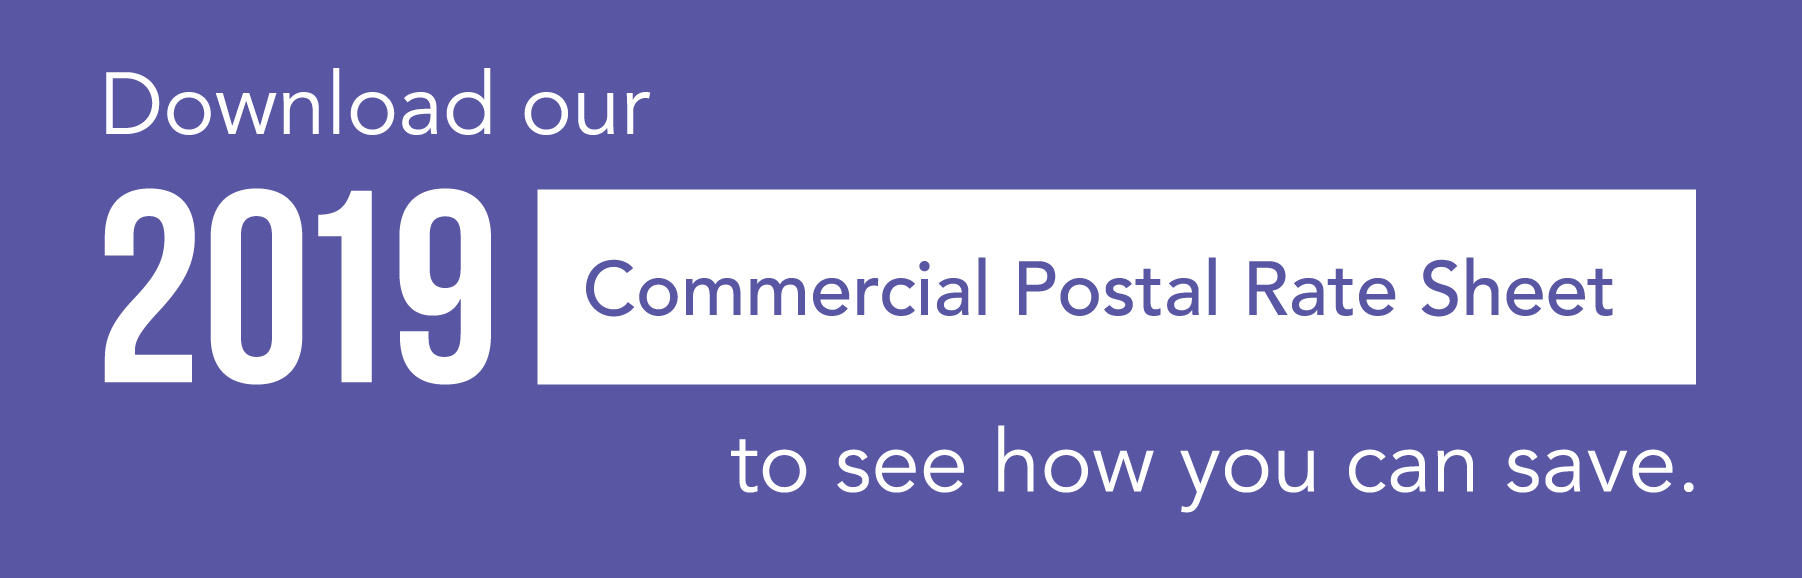 Download our 2019 Commercial Postal Rate Sheet